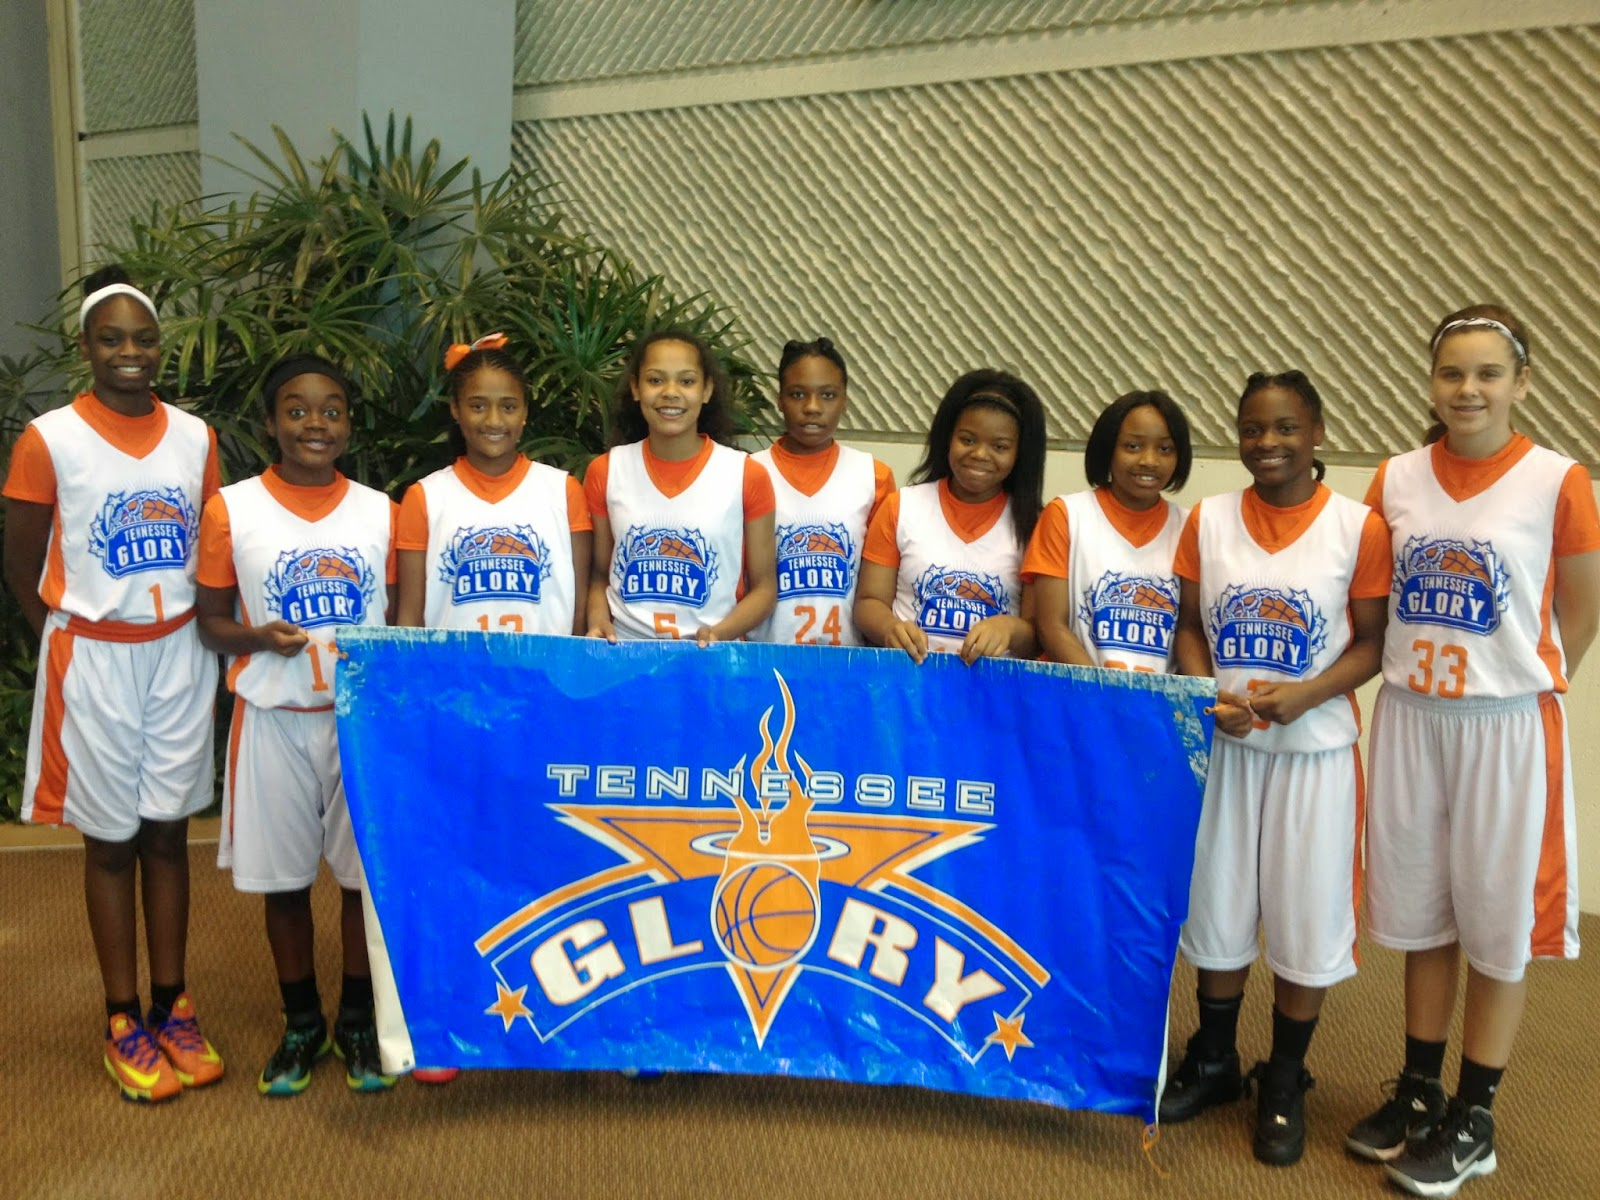 Tennessee Basketball Team Team Tennessee Glory 7th Grade